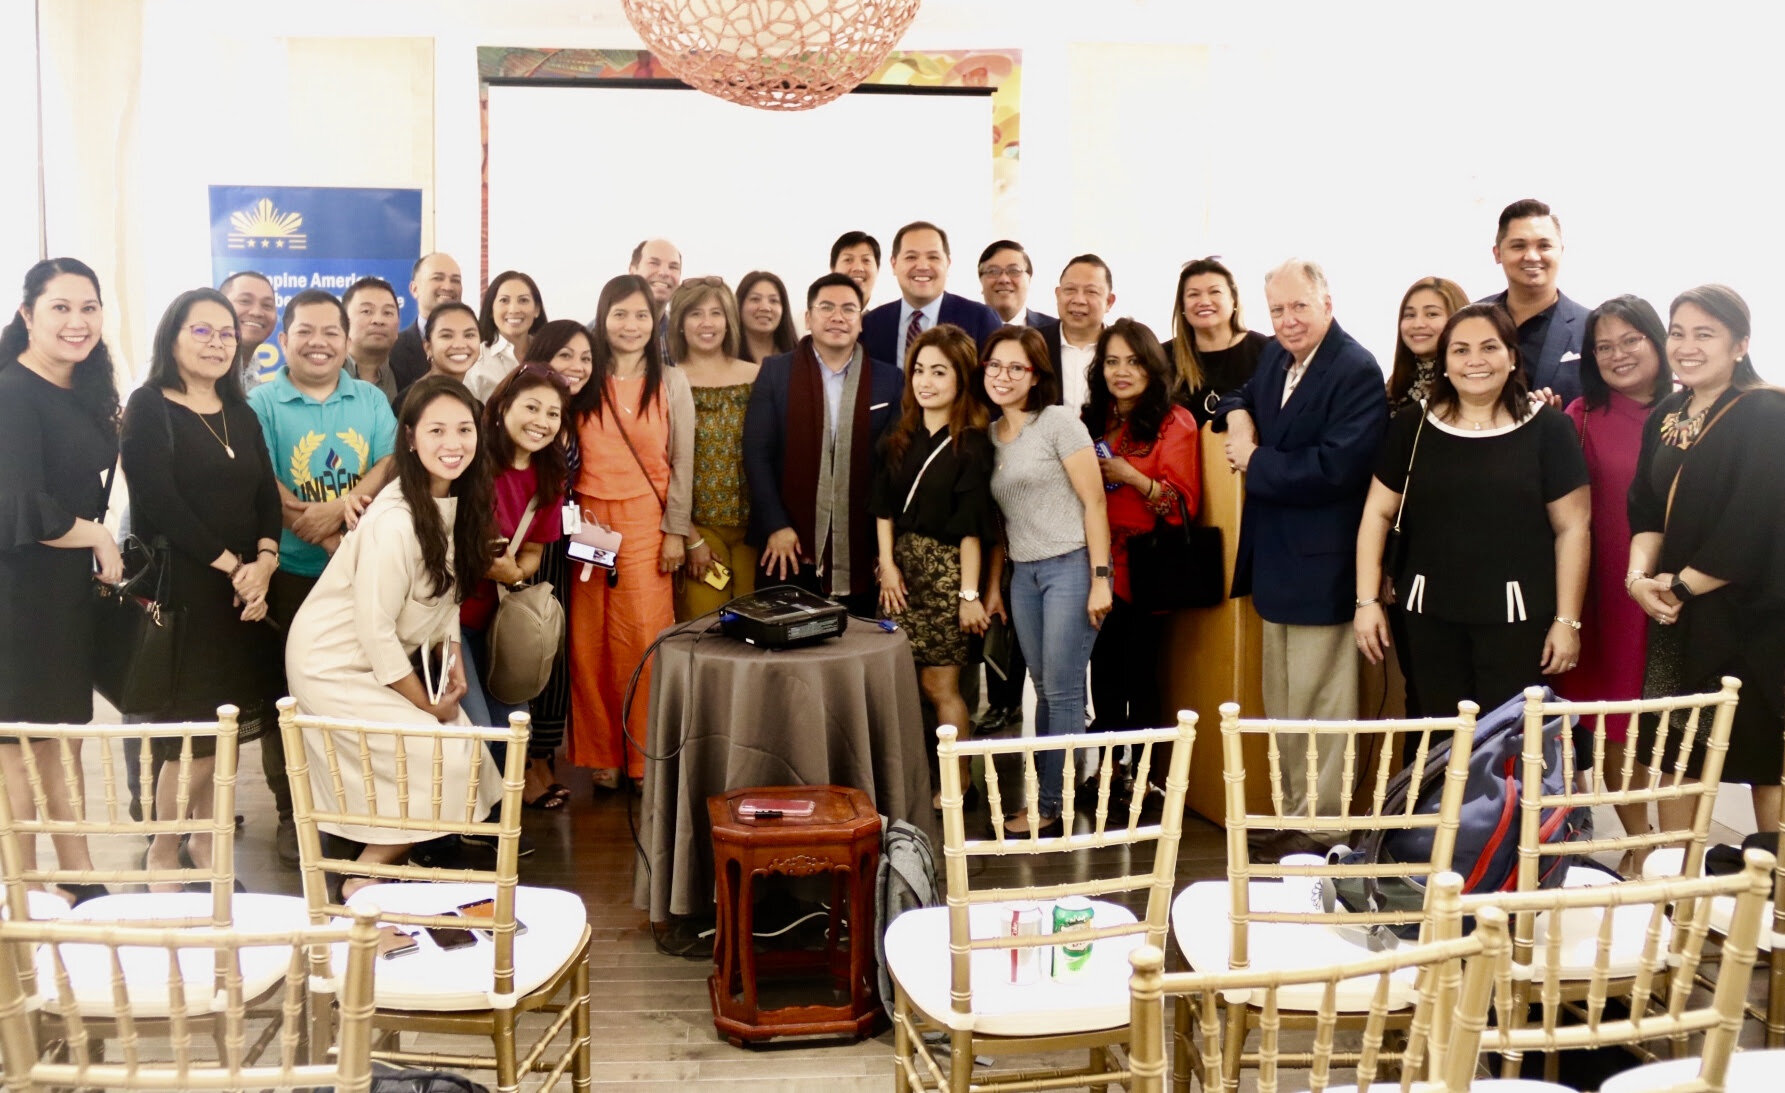 Group photo of Raymond Abrea with Commercial Counsellor Raymond Batac, Consul General Renato Pedro Villa, and attendees of the seminar